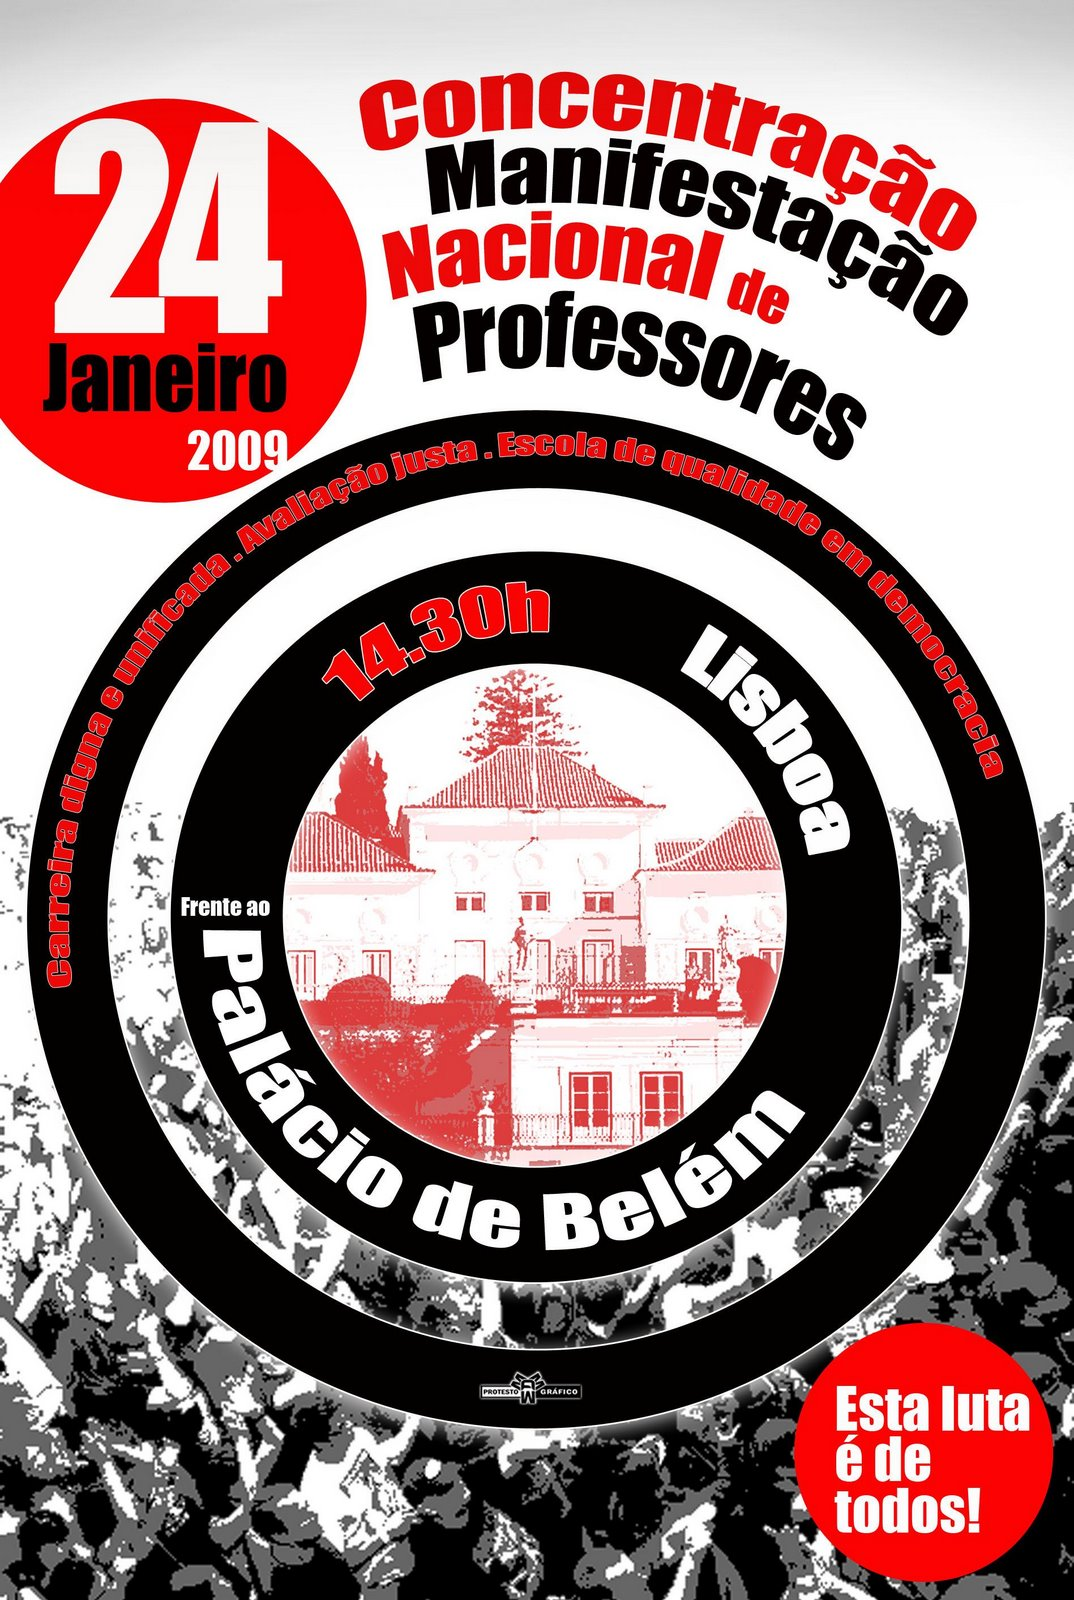 [CARTAZOFICIALMANIF24JAN09.JPG]